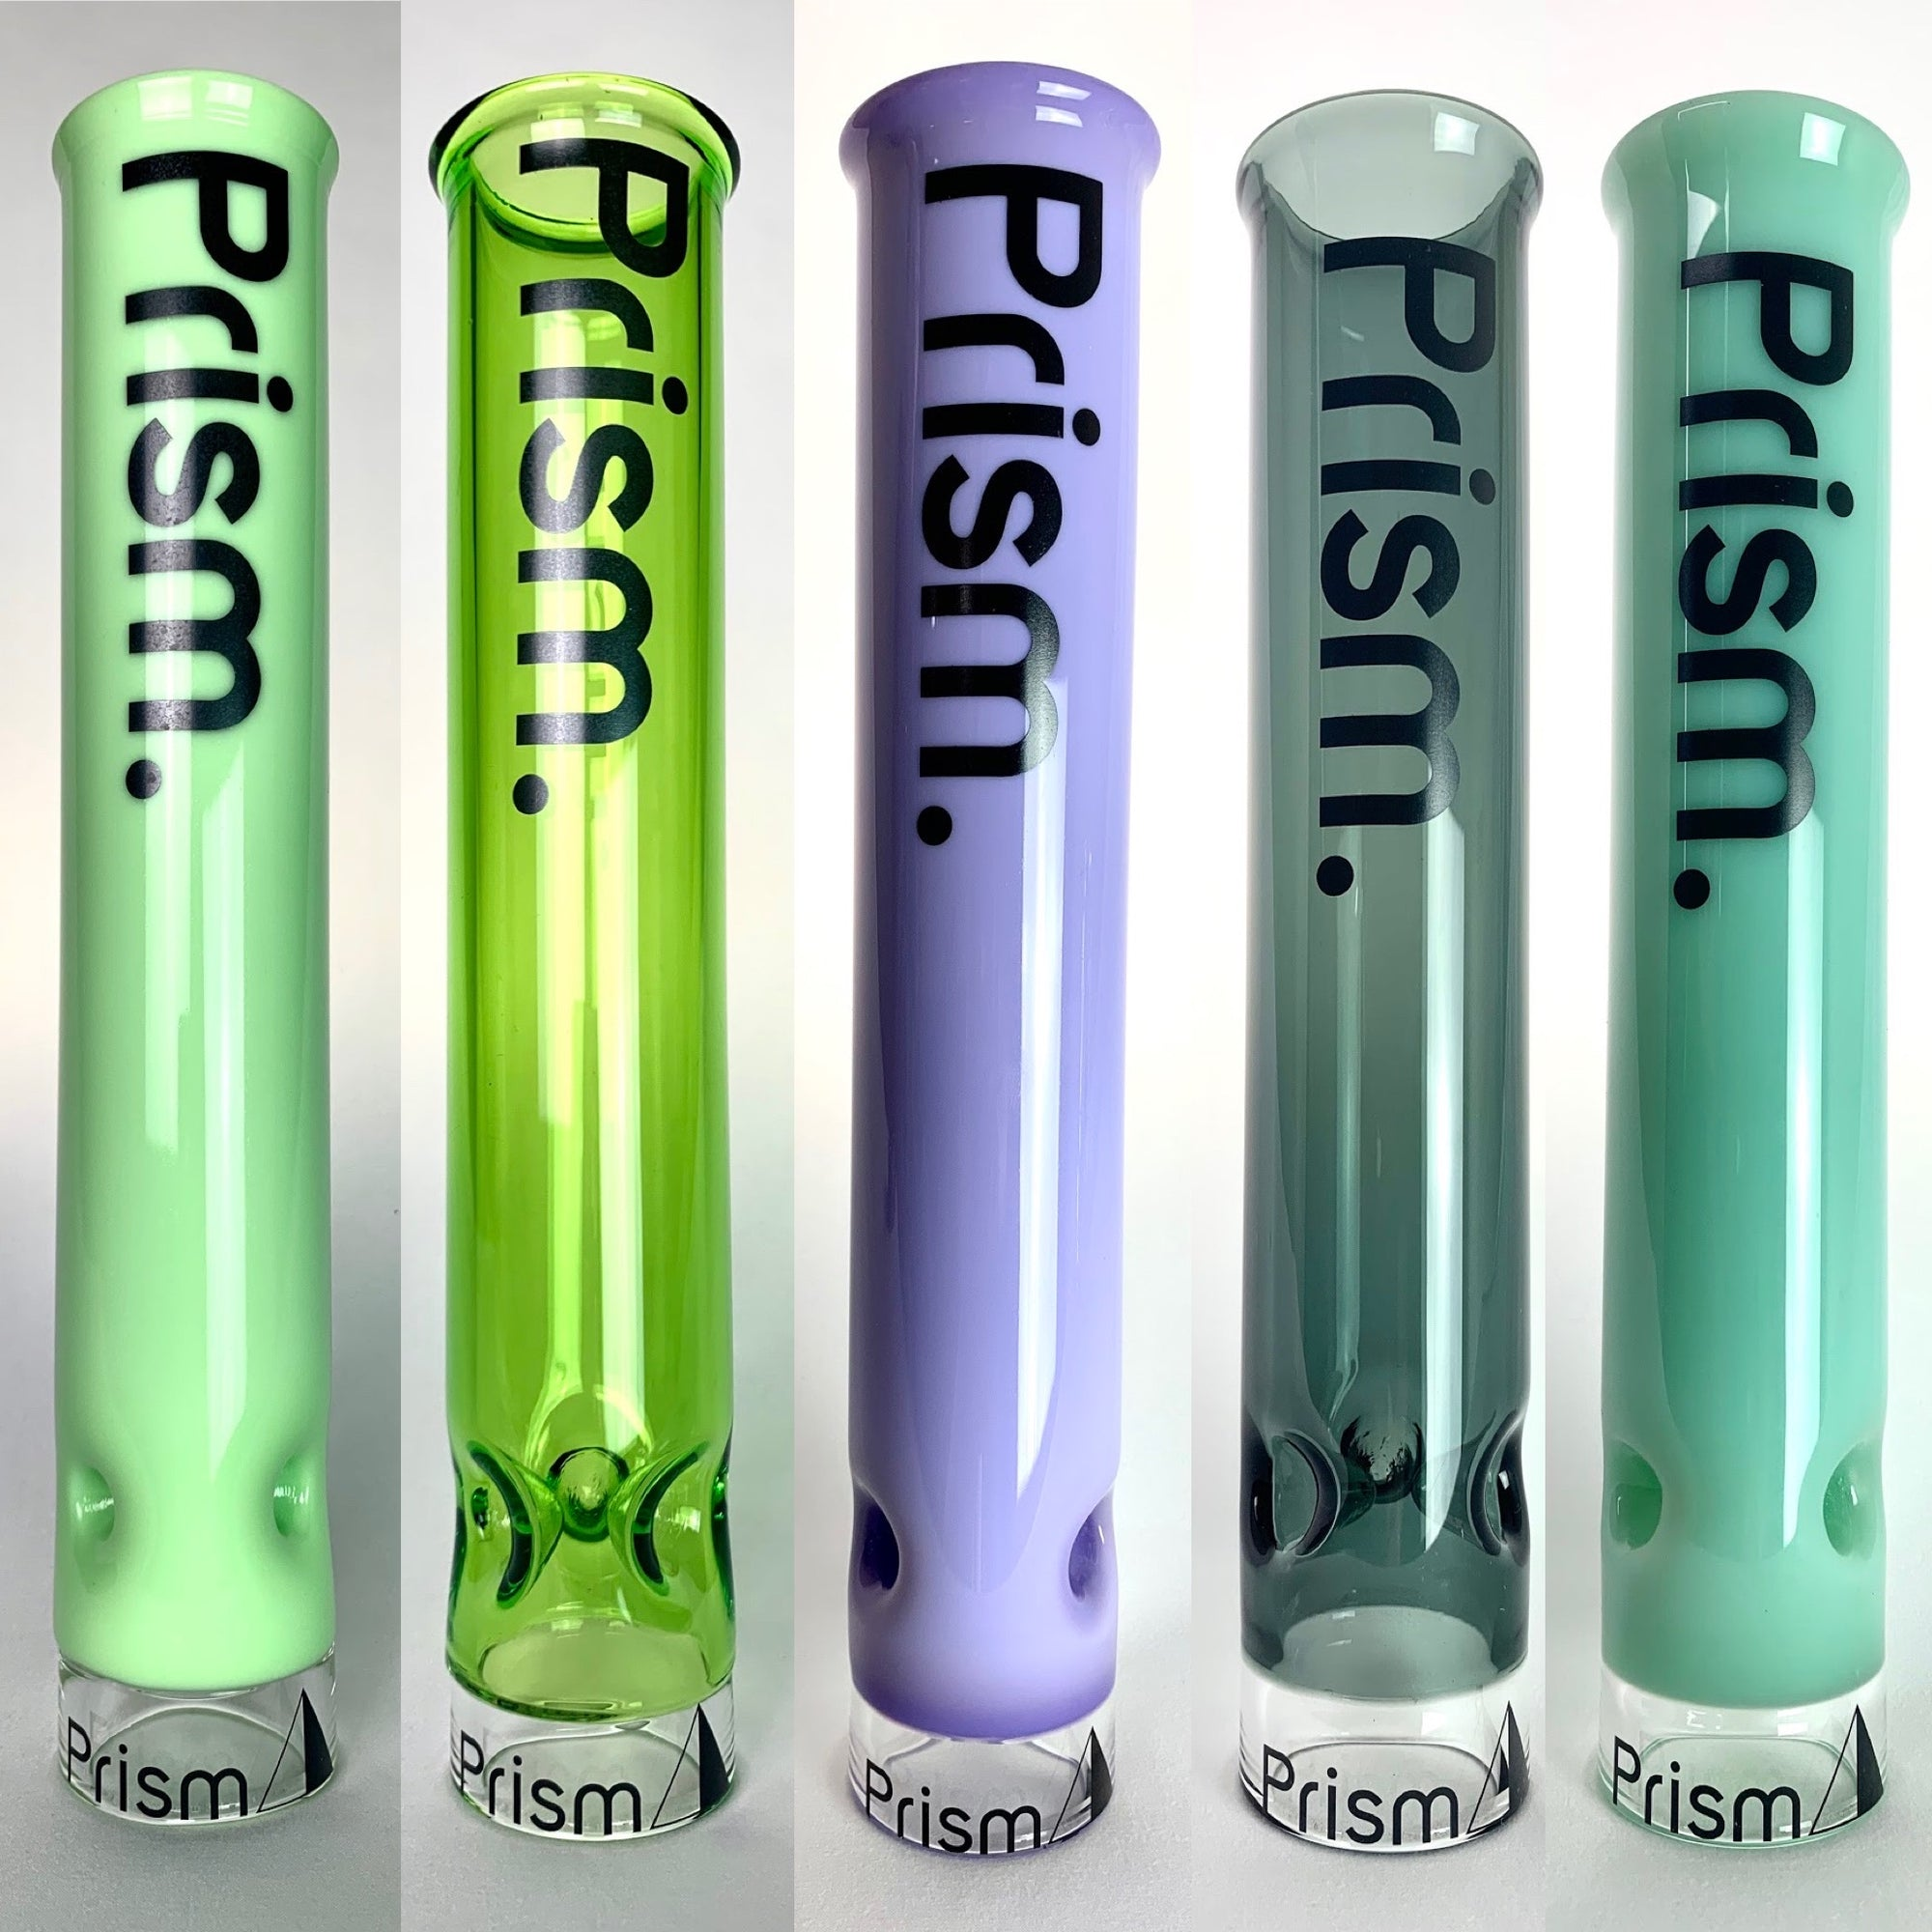 Five New Tall Colored Mouthpieces For Your Custom Bong